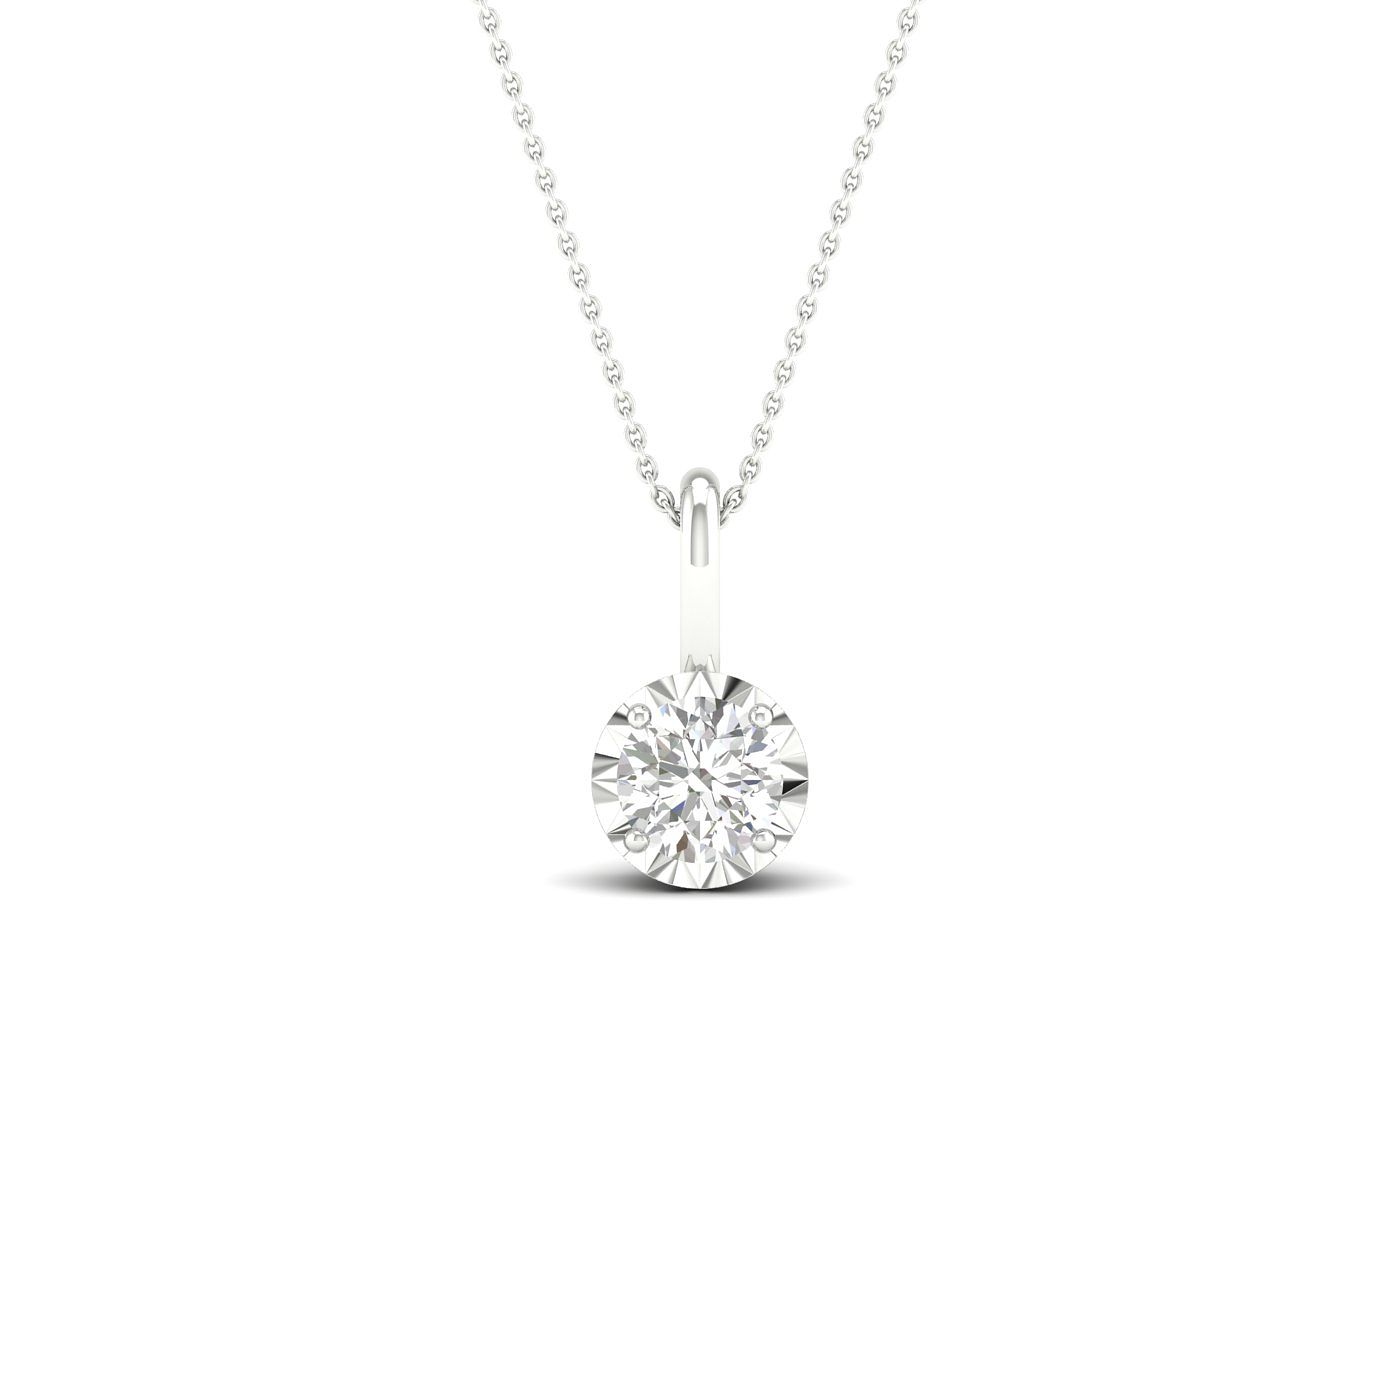 9ct White Gold 0.15ct Diamond Solitaire Pendant - Product number 1171992